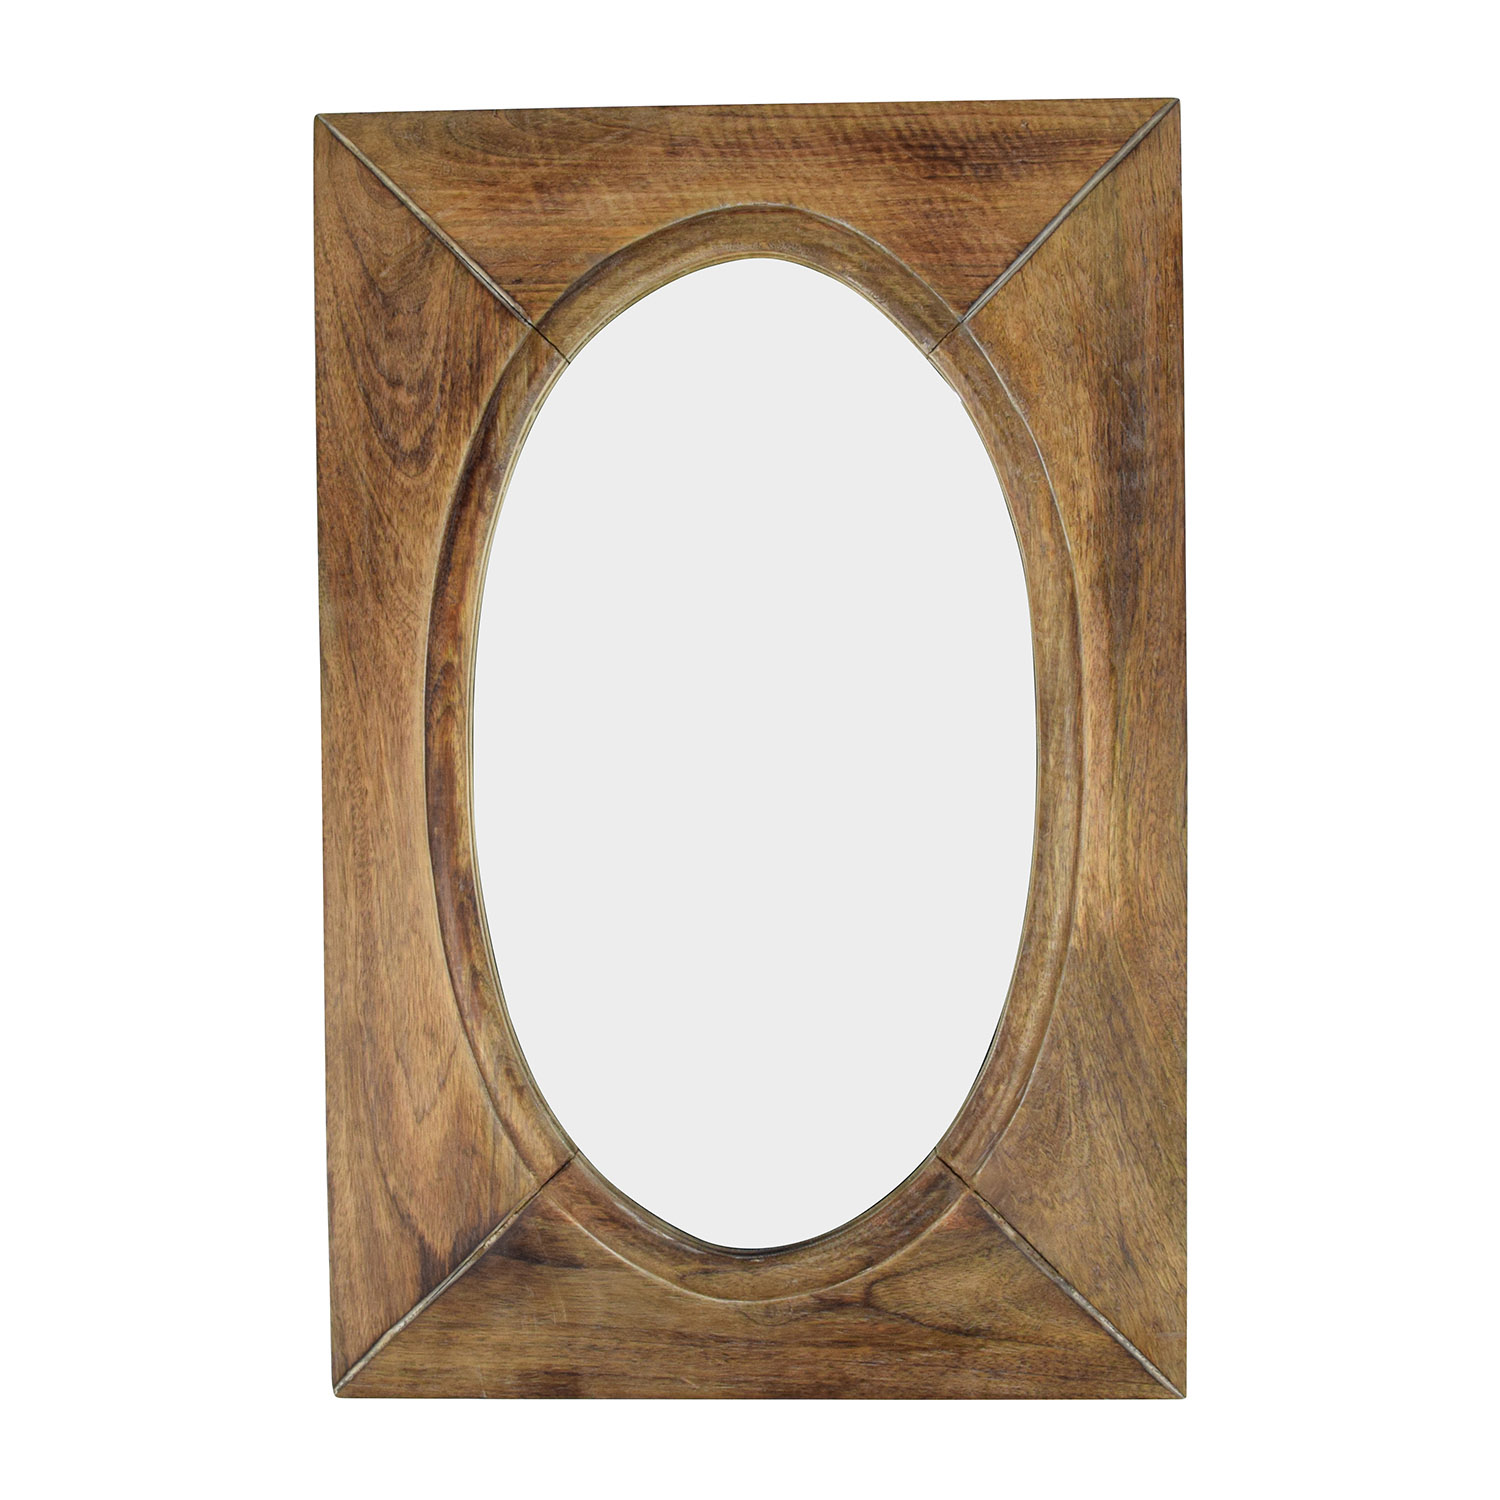 shop World Market World Market Rustic Wood Shandi Oval Mirror online